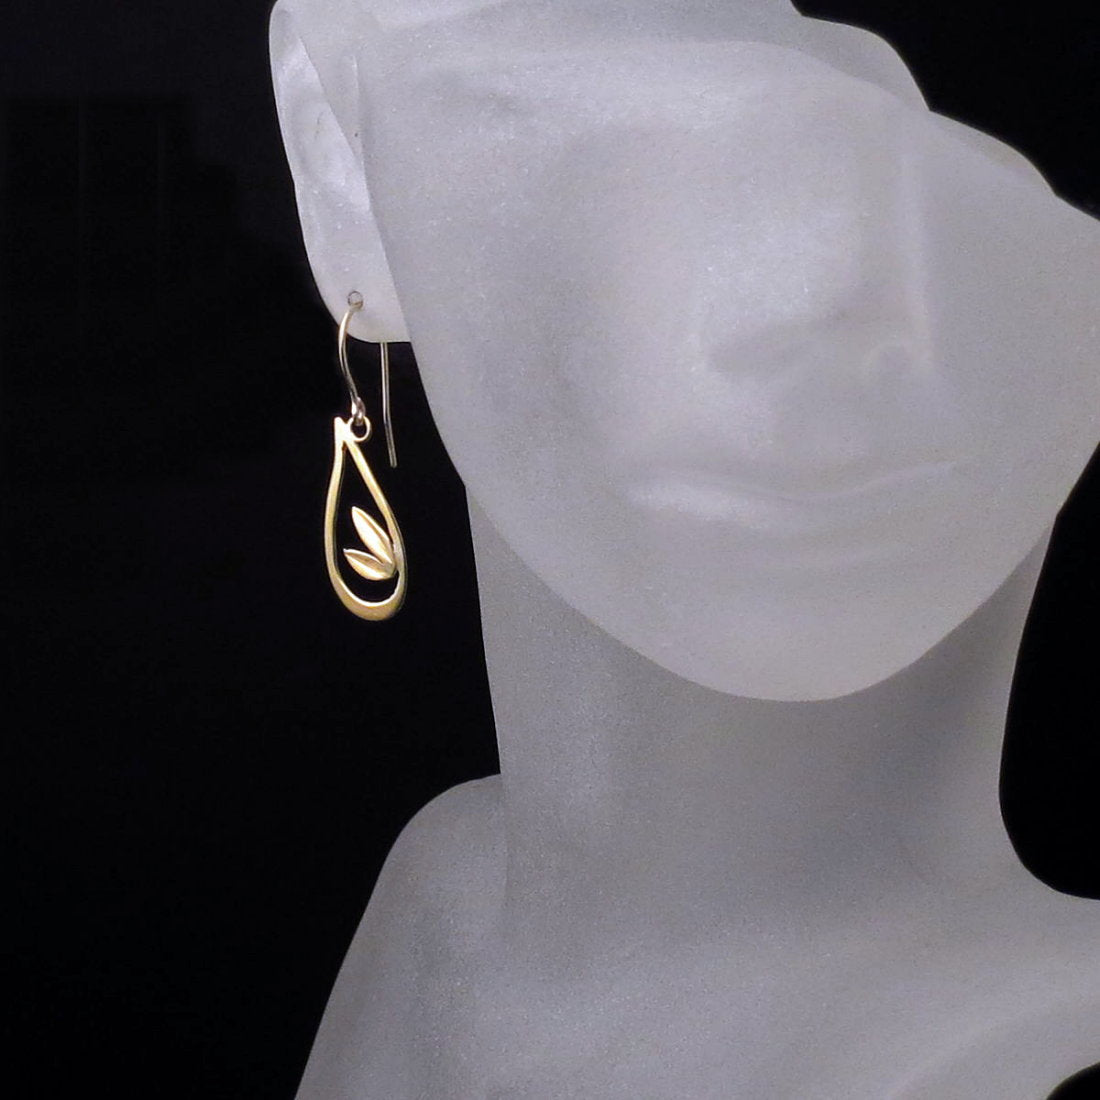 18K Gold Teardrop Leaf Earrings